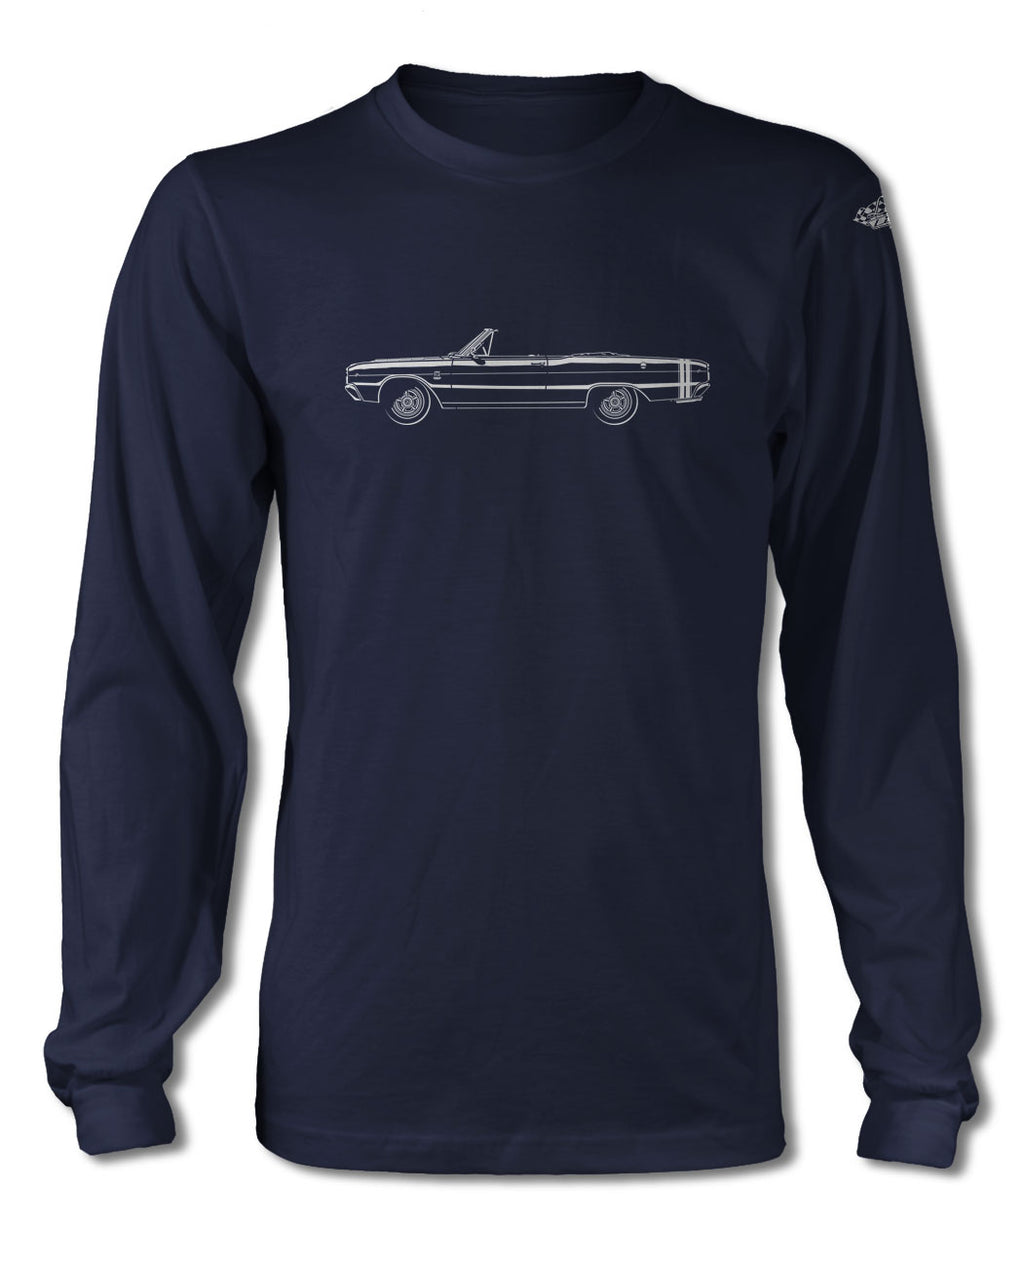 1968 Dodge Dart GTS Convertible T-Shirt - Long Sleeves - Side View